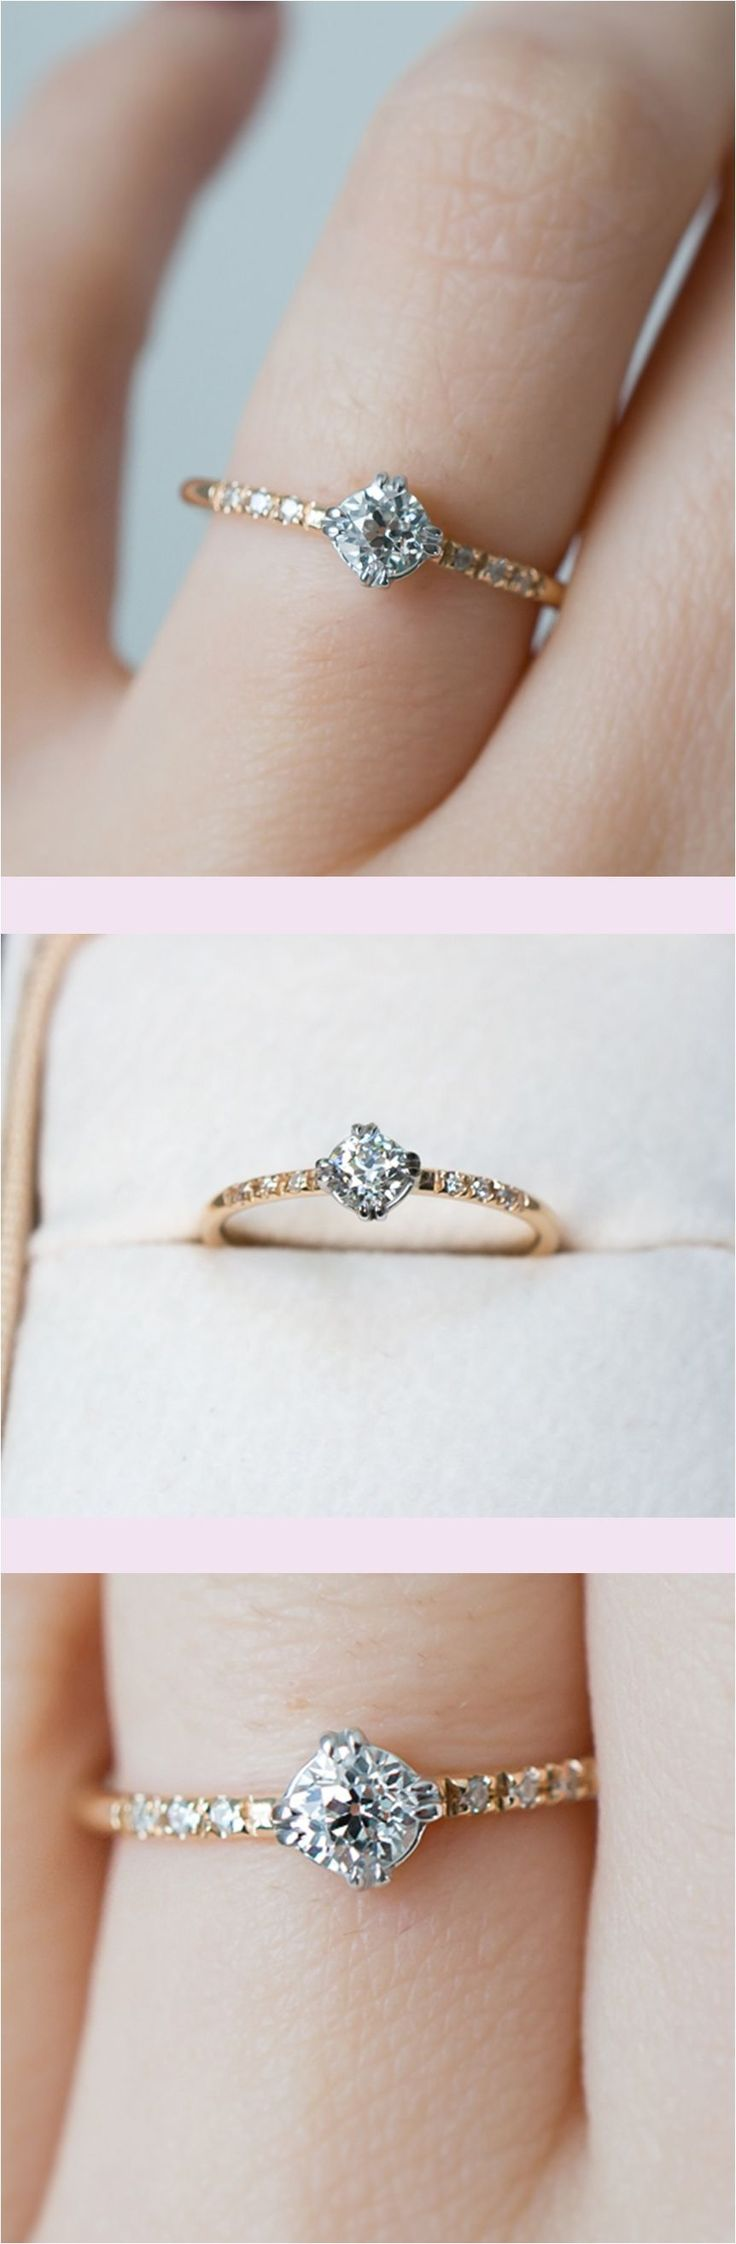 Perfect Simple And Minimalist Engagement Ring You Want To https://bridalore.com/2017/12/15/simple-and-minimalist-engagement-ring-you-want-to/